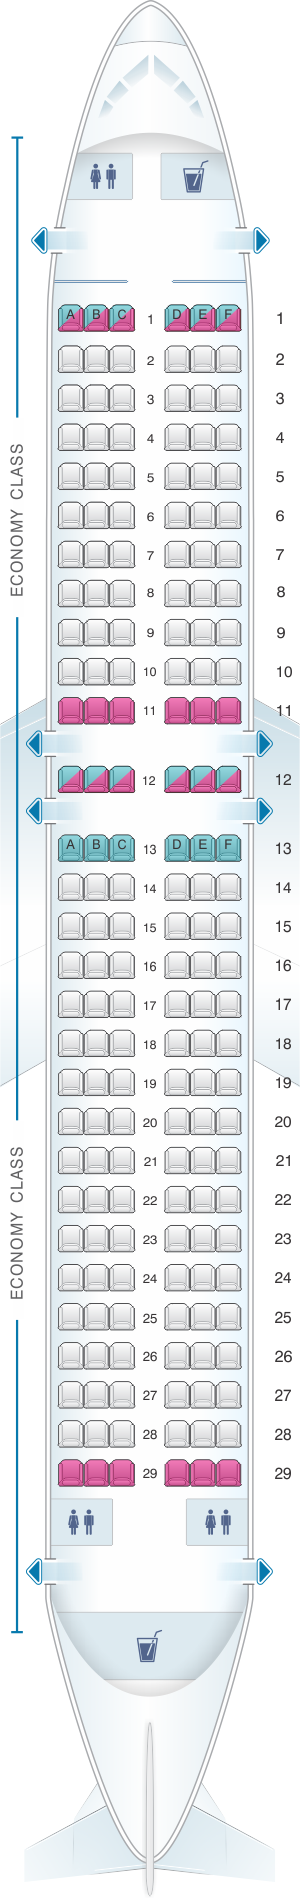 Seat map for TAM Airlines Airbus A320